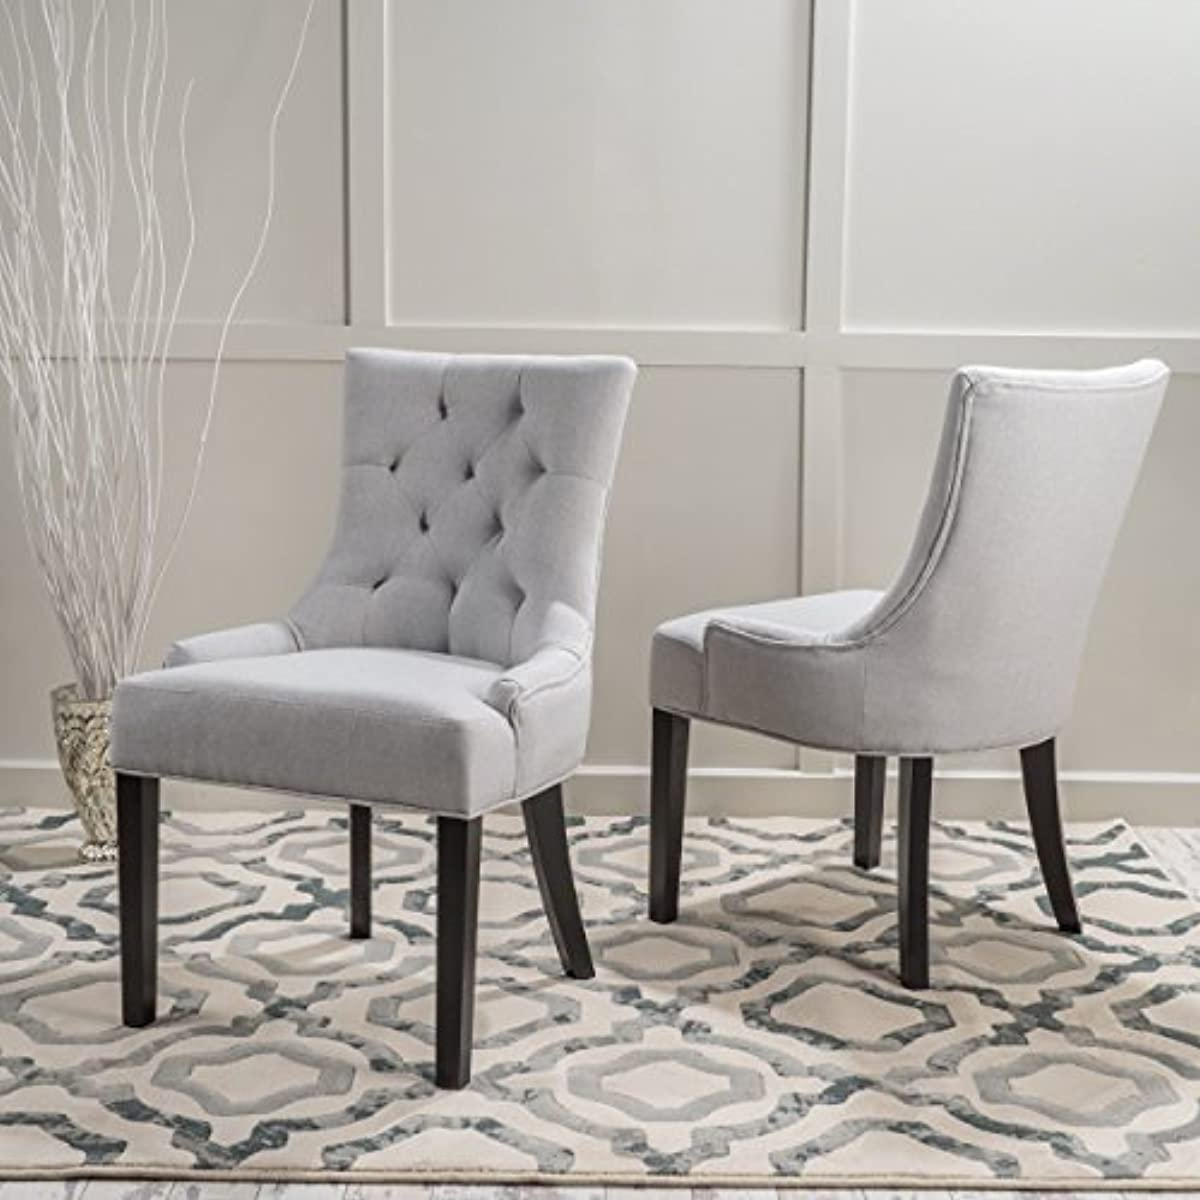 Set of 2, Soft Grey Casual Chairs, Dining Seats, Fancy ...